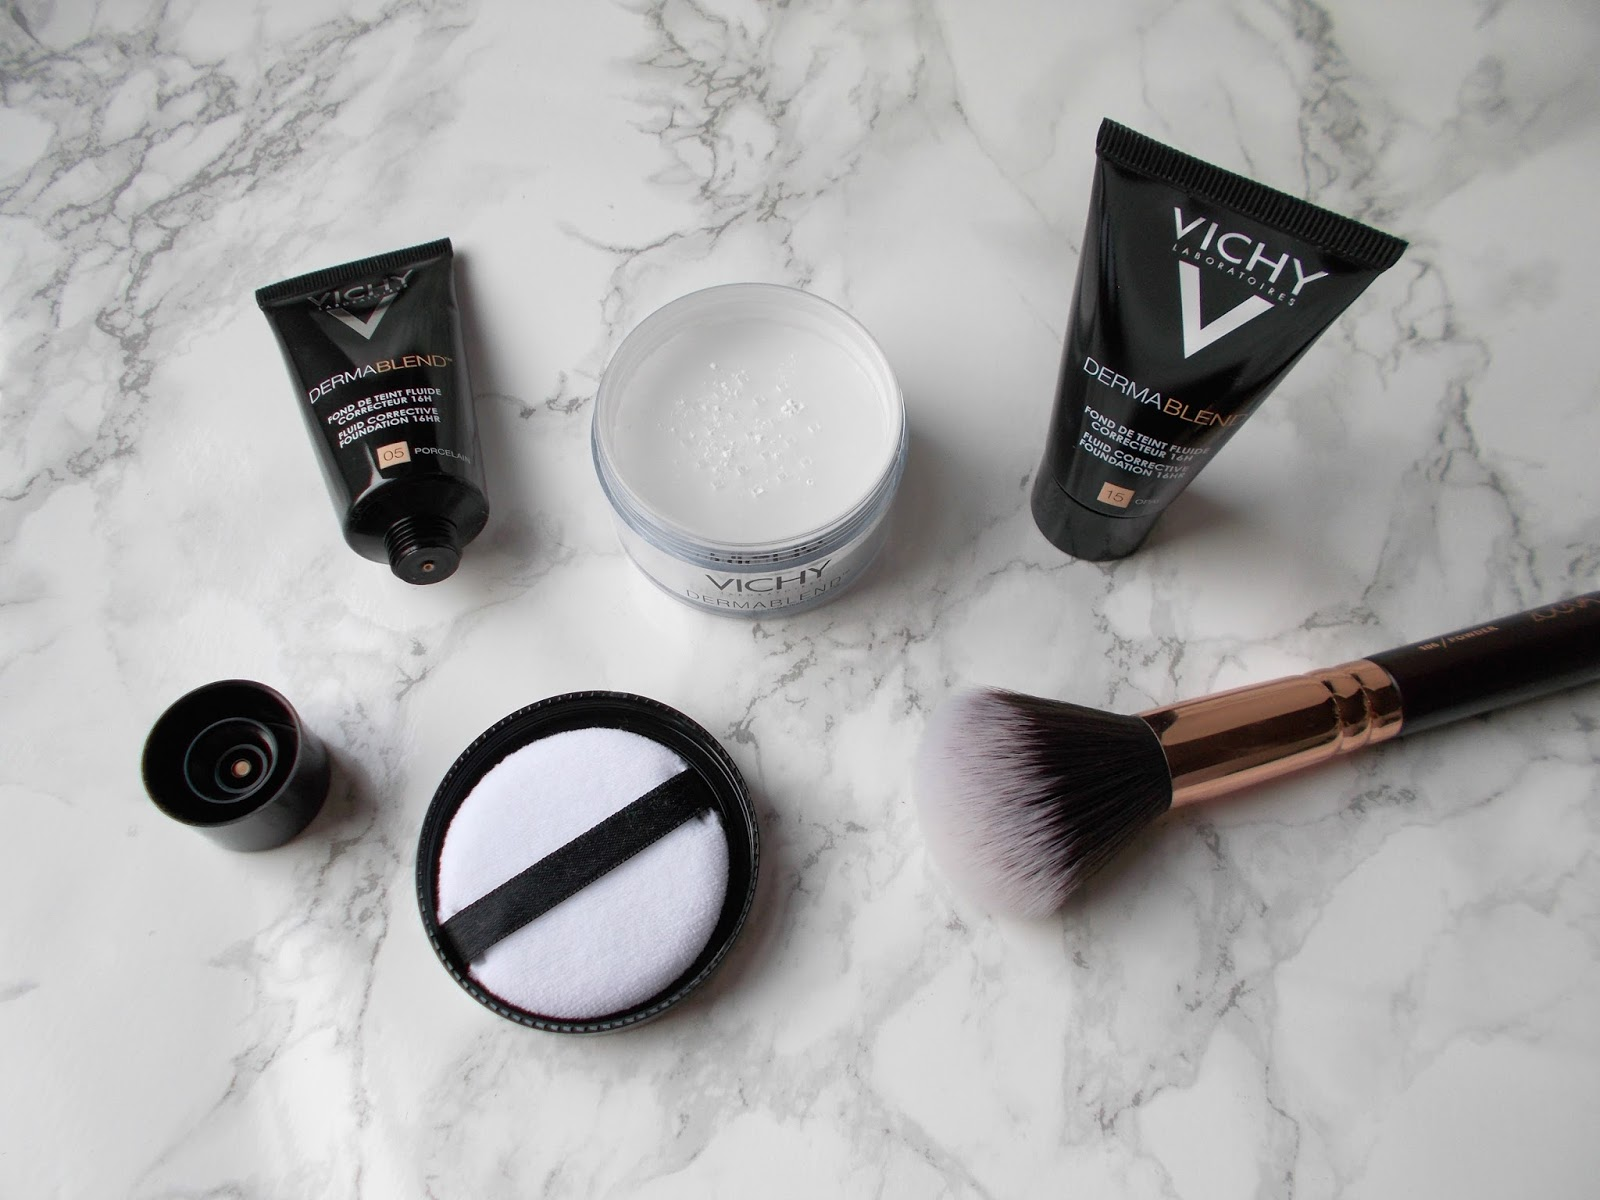 Vichy Dermablend 05 Porcelain 15 Opal foundation setting powder review